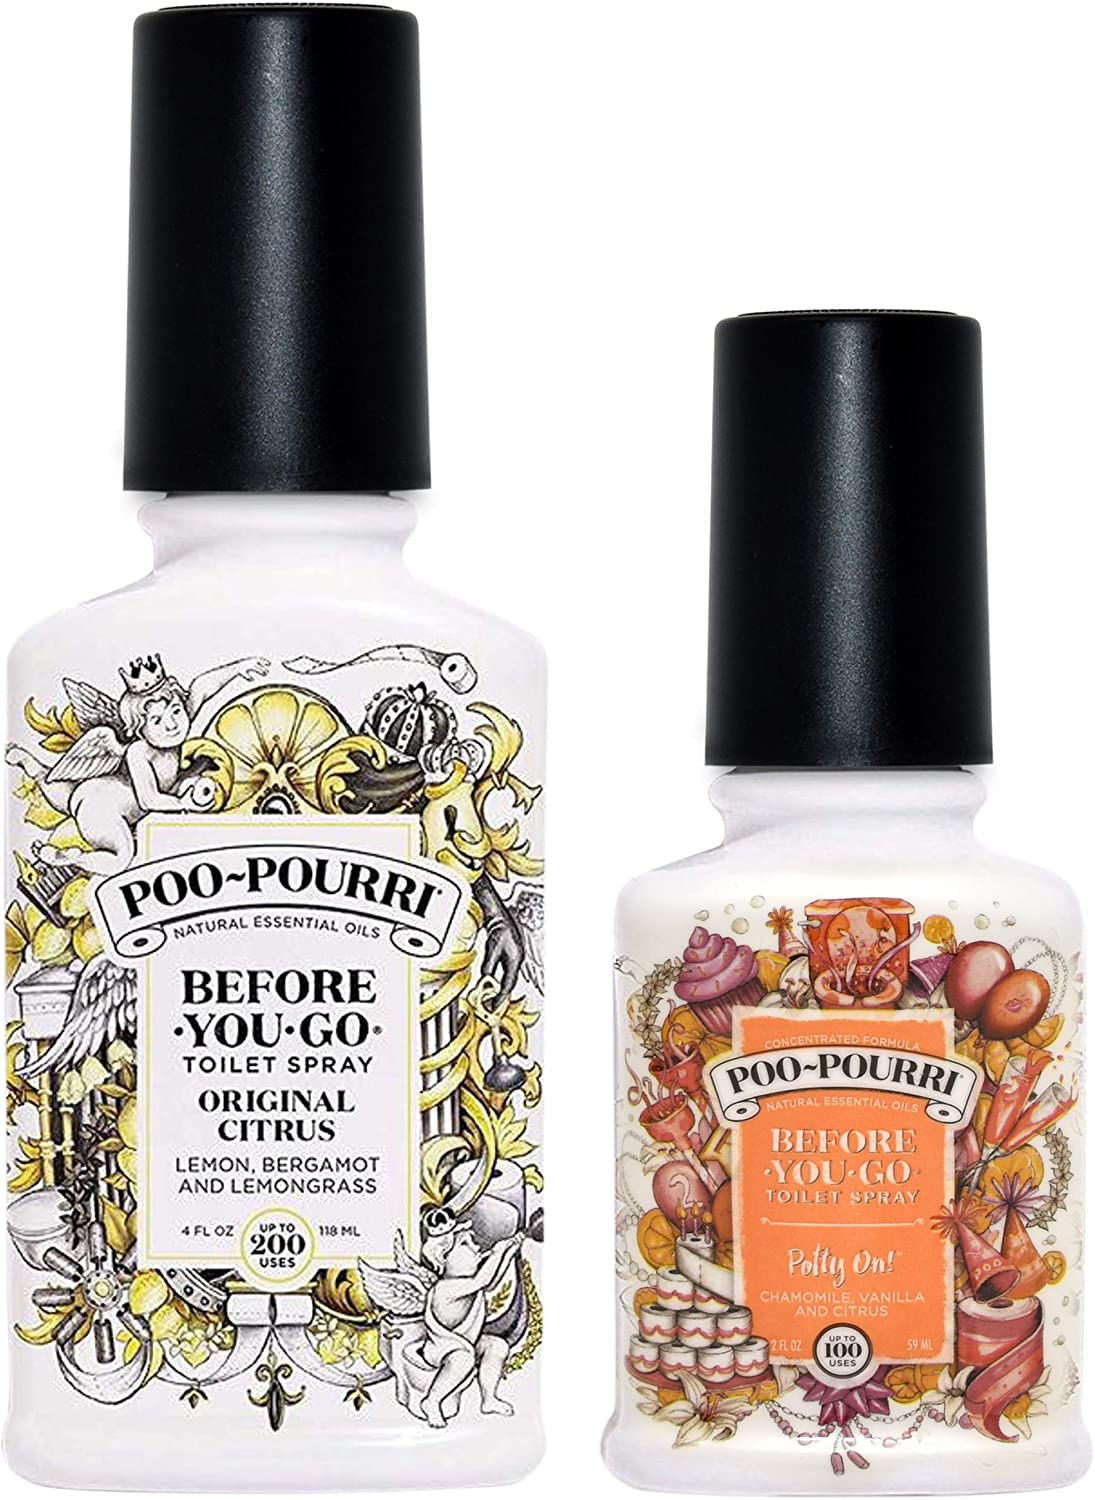 Poo-Pourri Original Citrus 4 Excellence Ounce and Before 2 Potty Y On gift